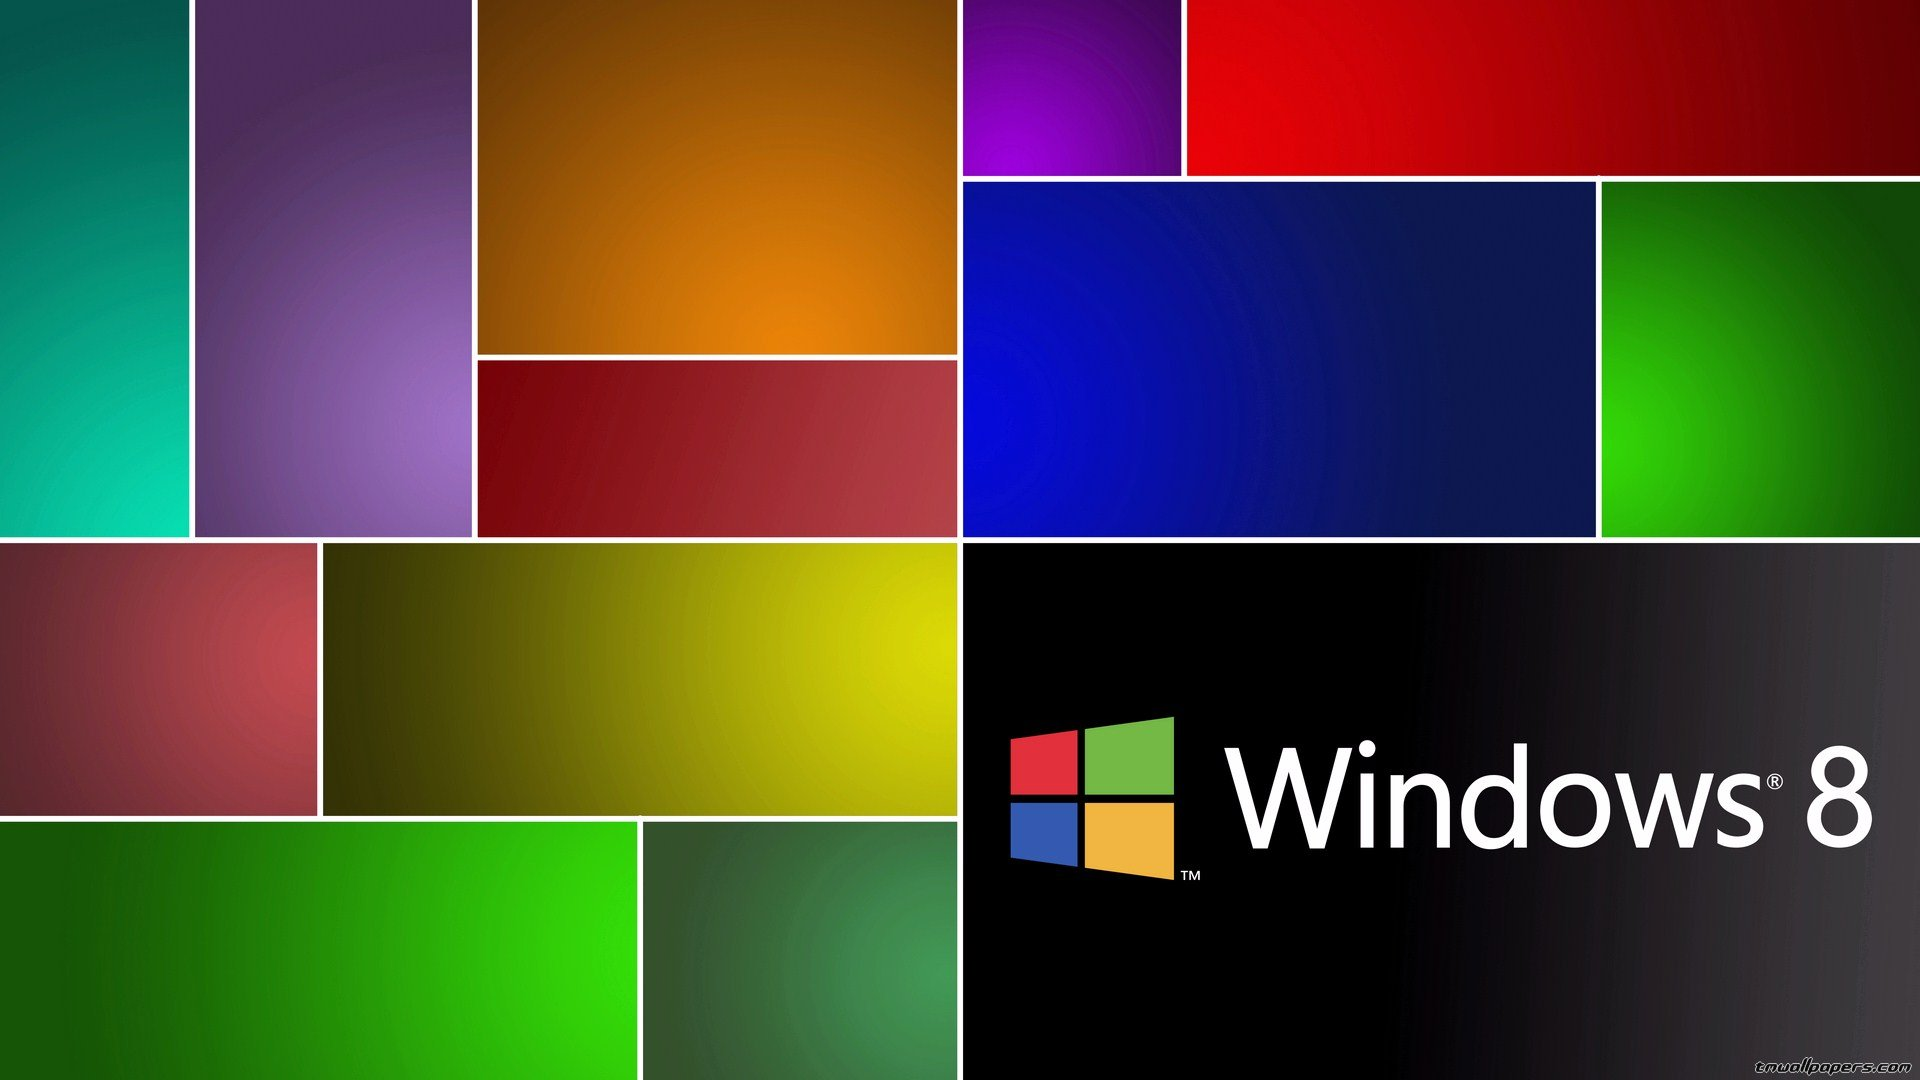 windows wallpaper 1920x1080 ws - photo #48